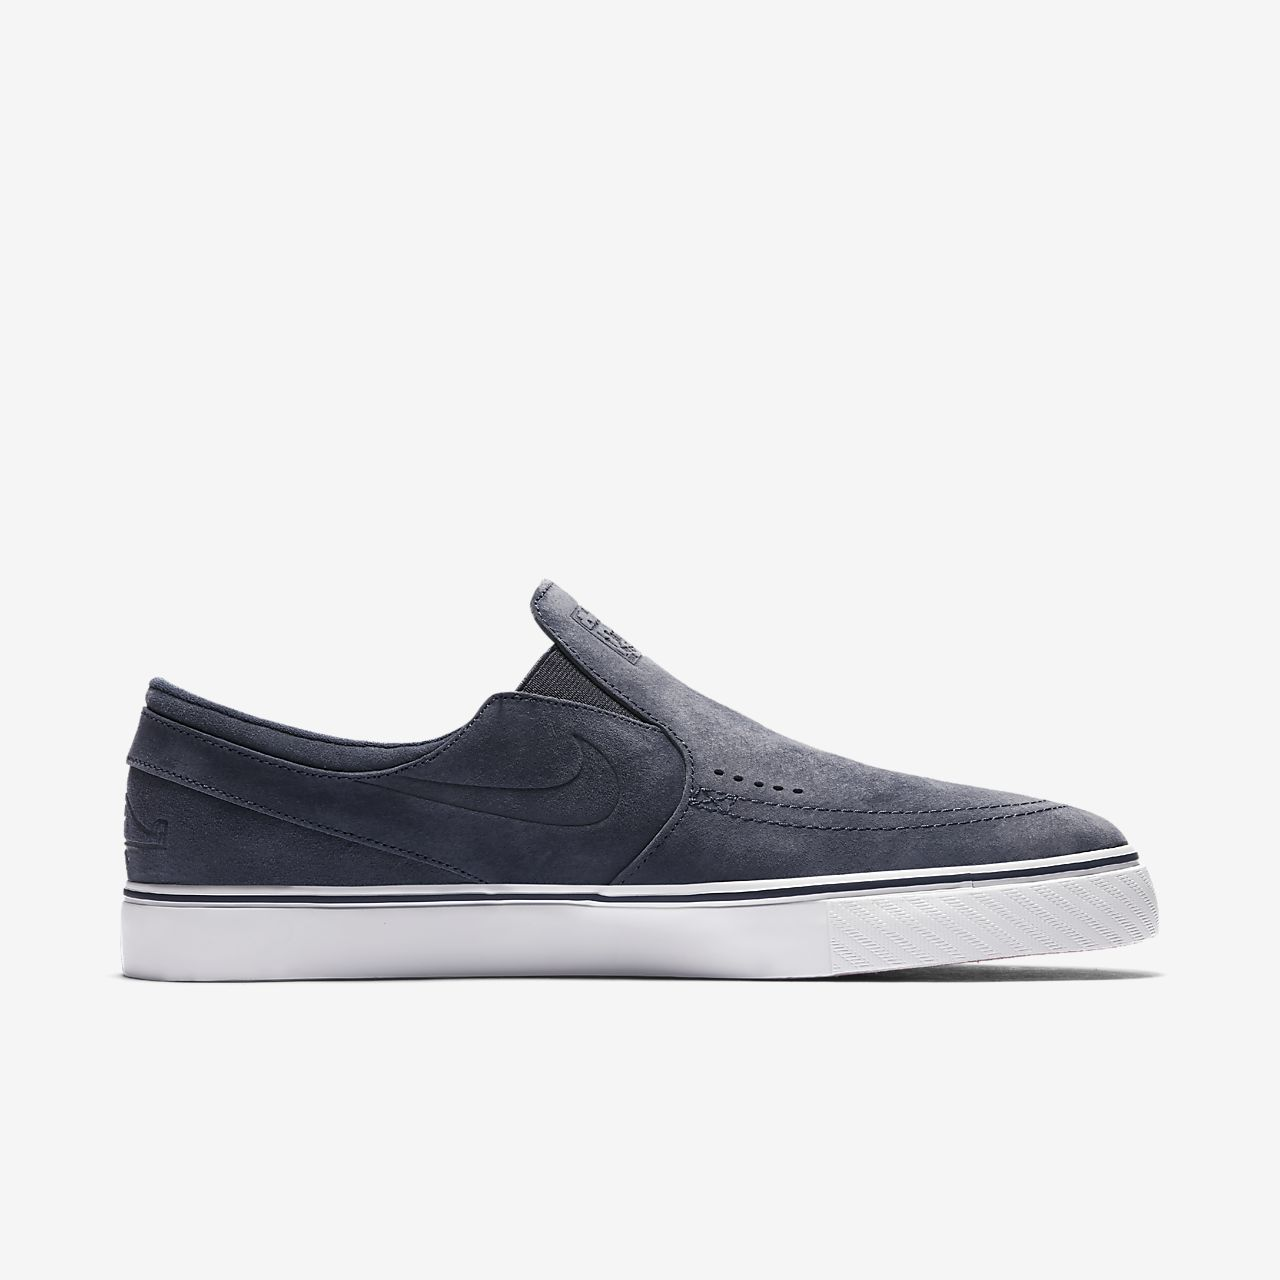 ... Nike SB x Poler Zoom Stefan Janoski Slip-On Suede Men's Skateboarding  Shoe